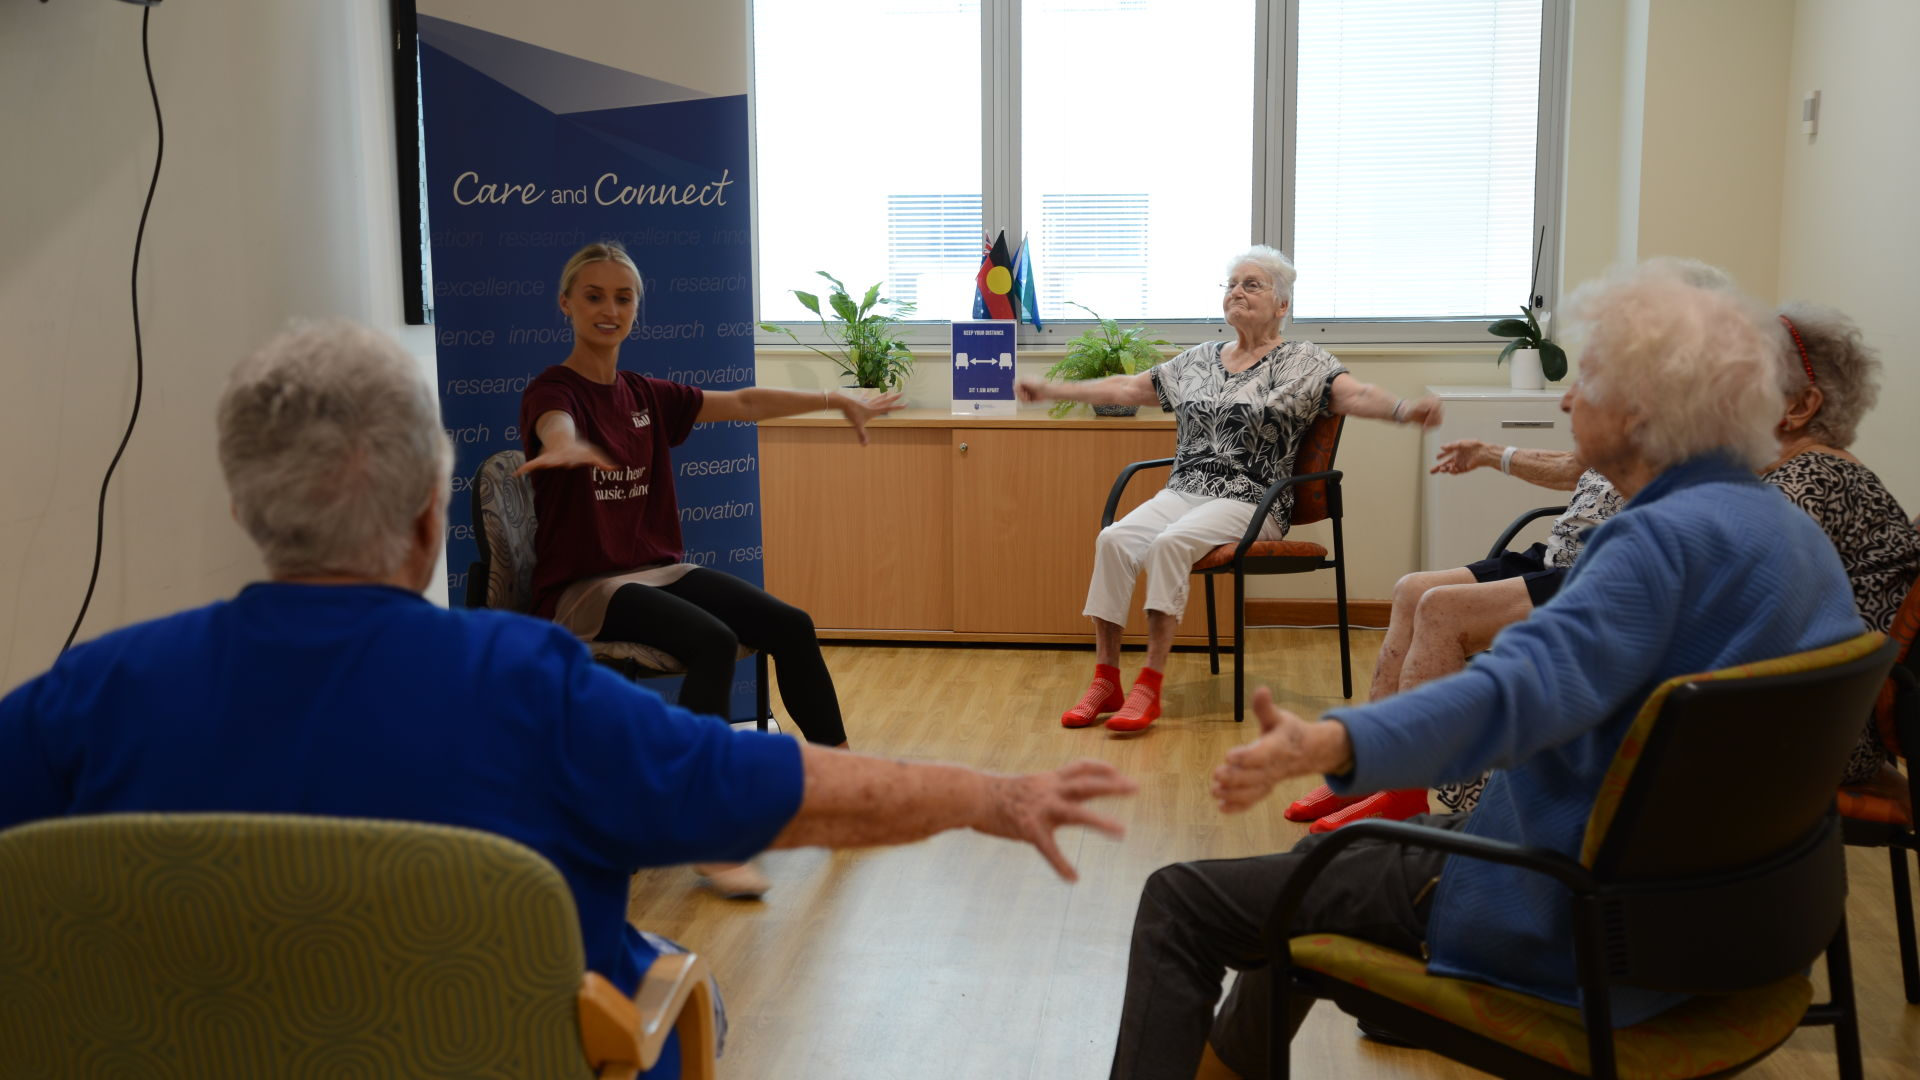 Queensland Ballet brings the joy of dance to the patients and residents at St Vincent's